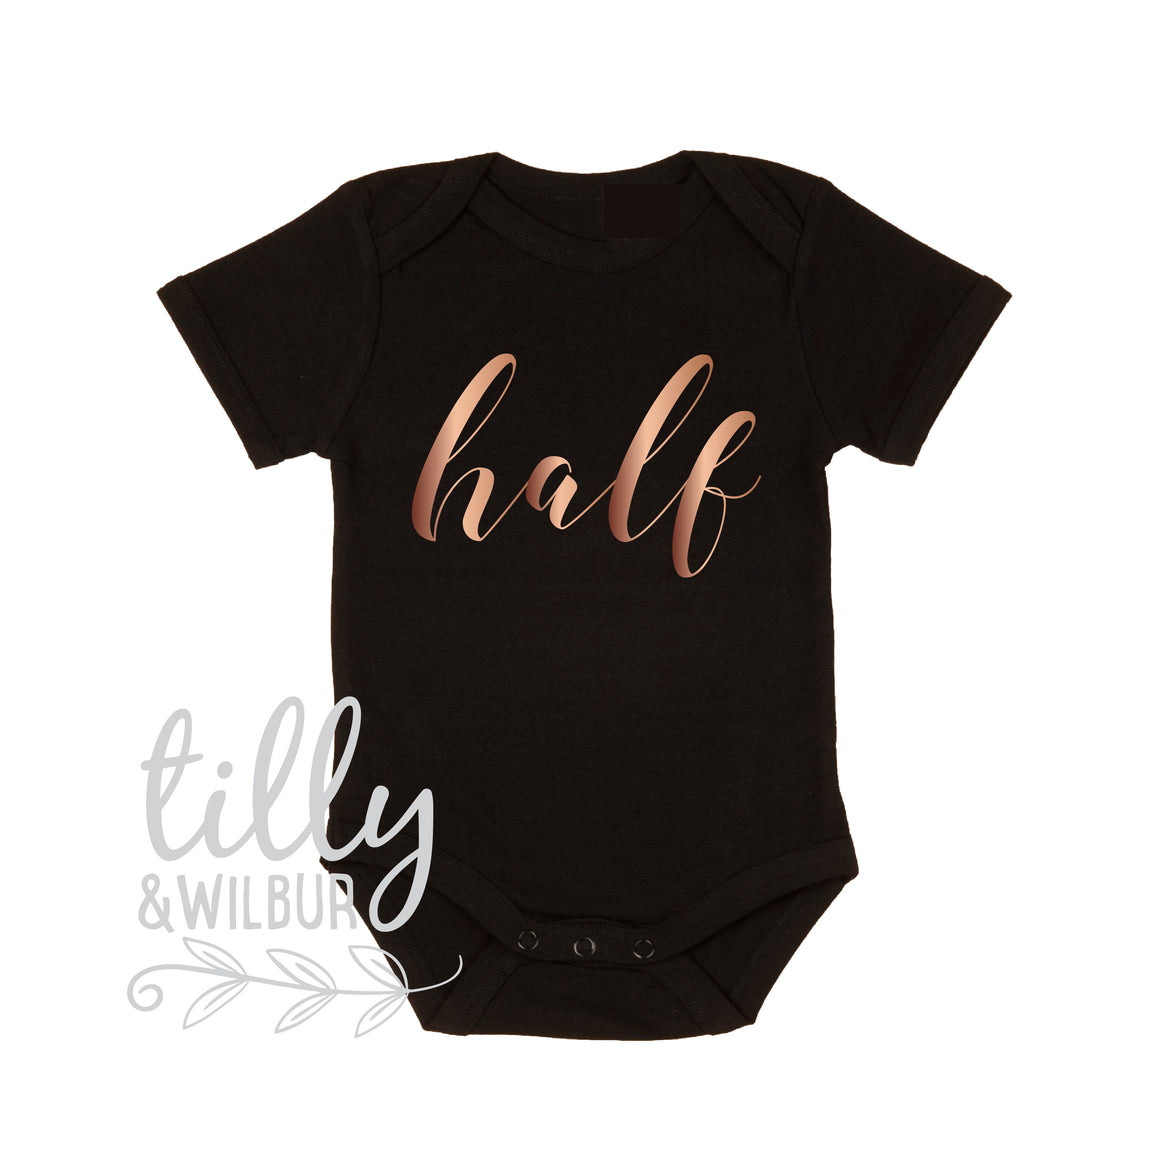 Half Birthday Baby Bodysuit, It's My Half Birthday, Script Design, Rose Gold, Baby Girl's Clothing, 6 Month Photoshoot Outfit, Milestone